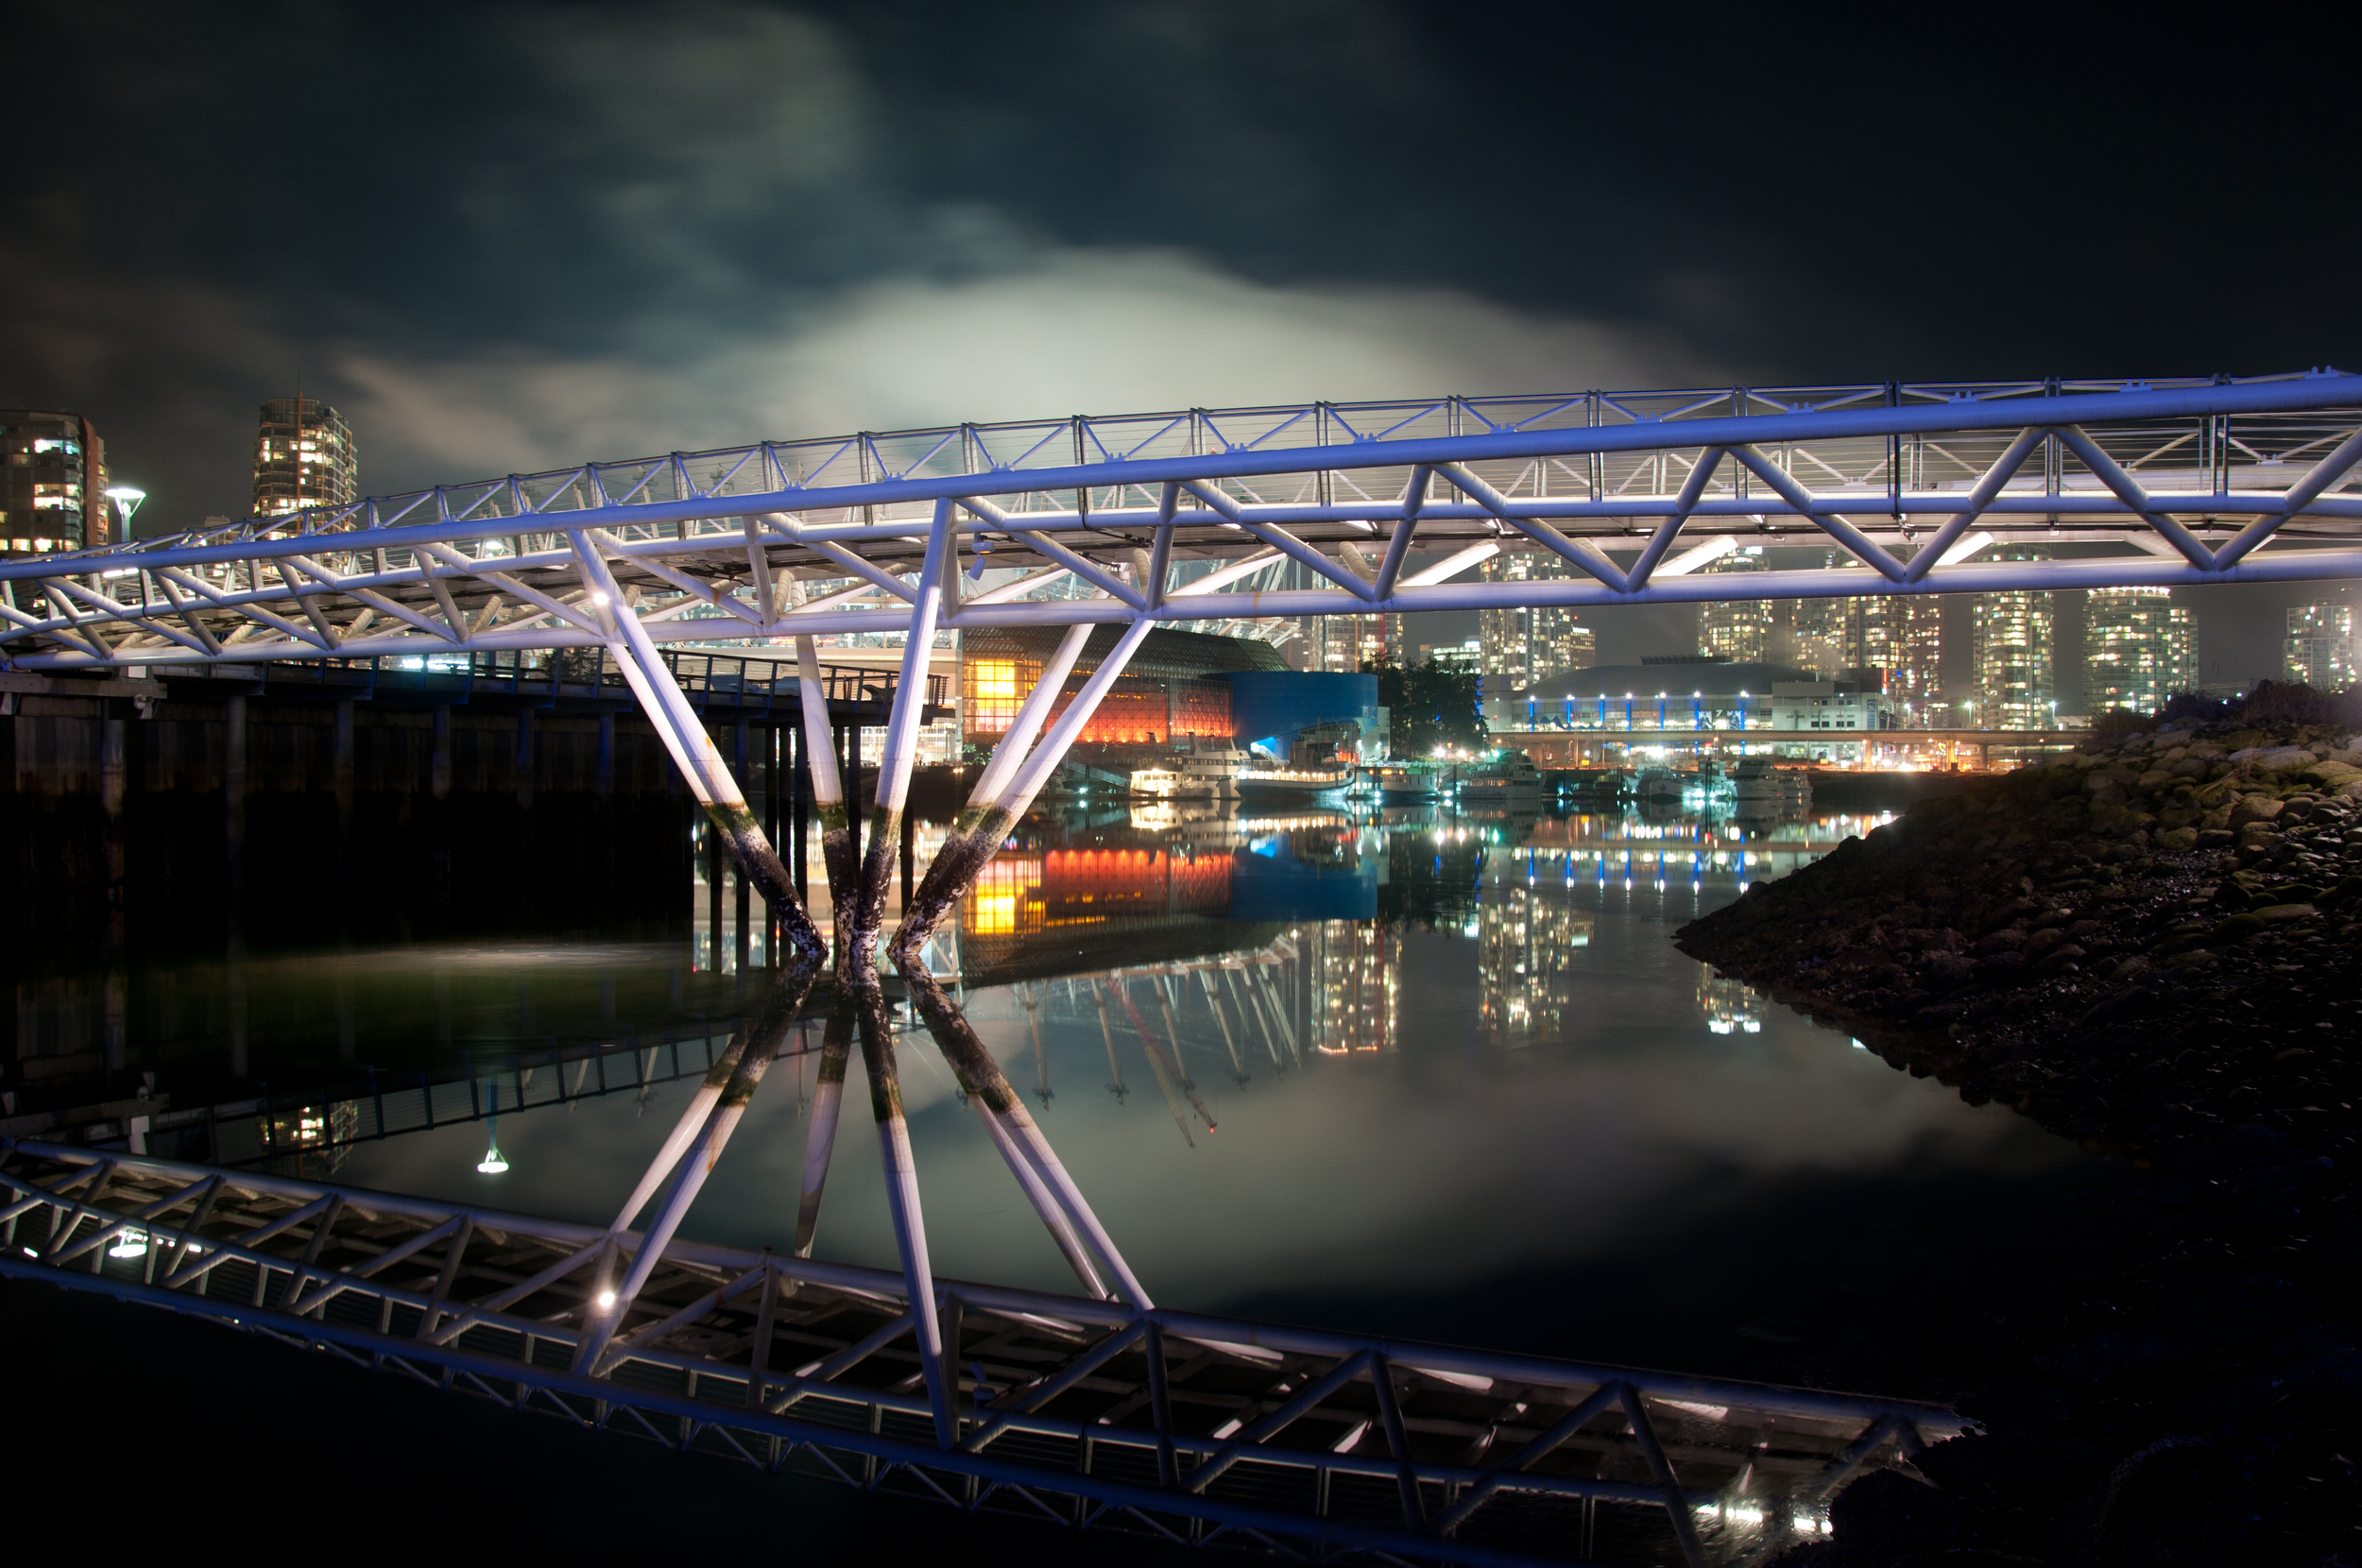 25012011_OlympicVillage_underbridge2.jpg